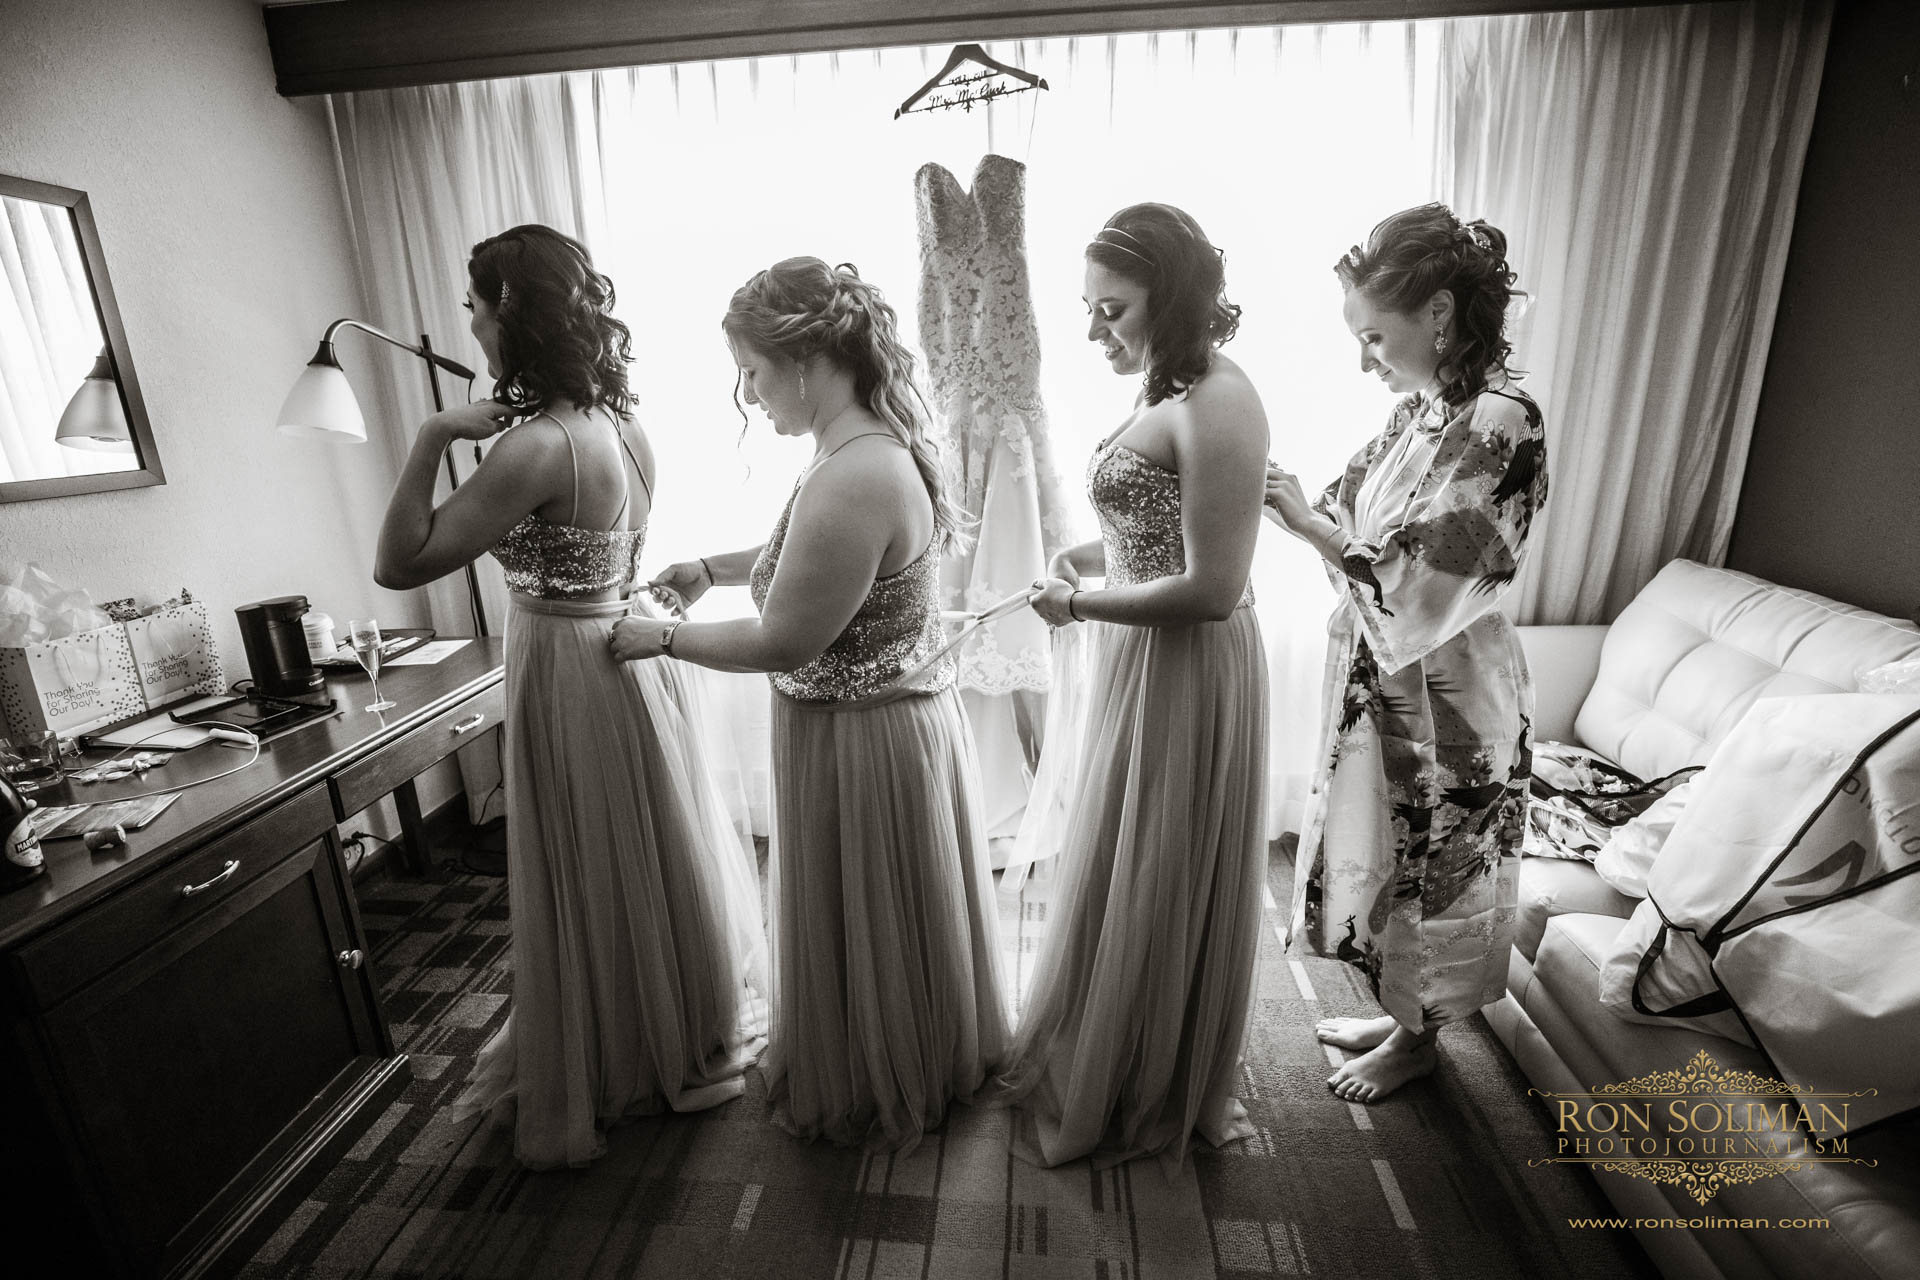 THE MERION WEDDING LM 02